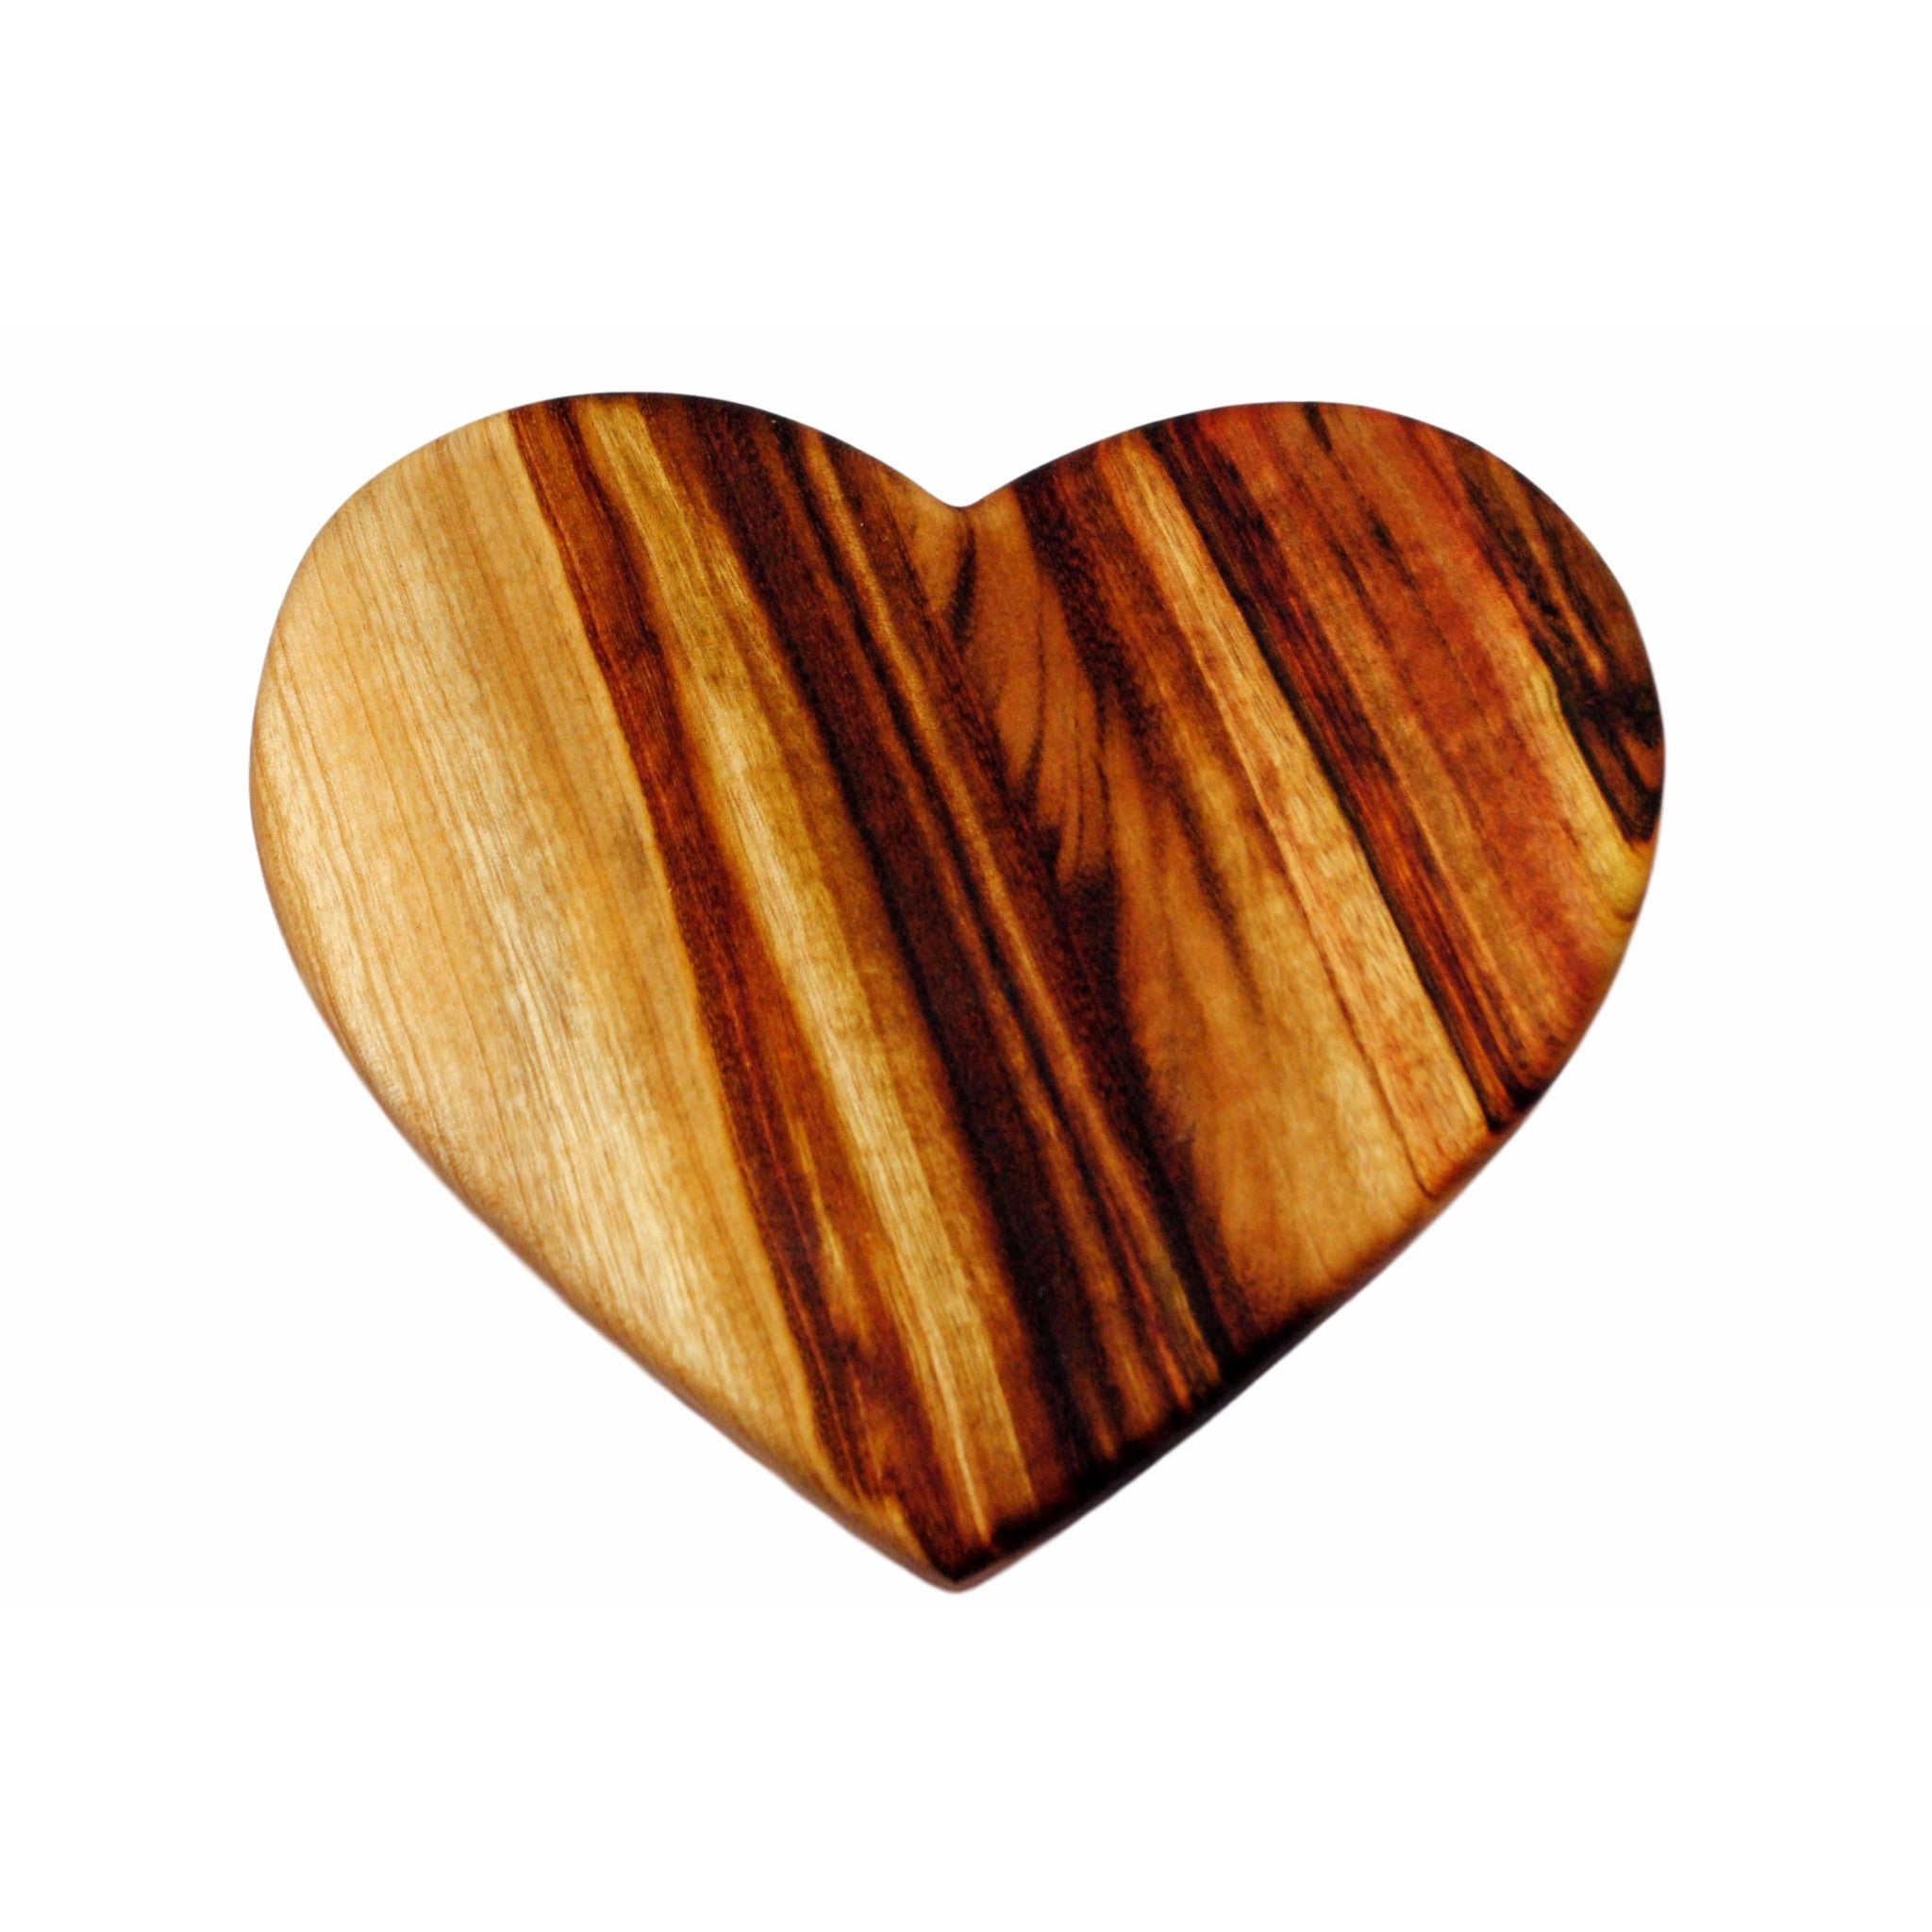 love heart shape chopping board bonbonniere wedding gift favour valentine small large camphor wooden eco sustainable gift